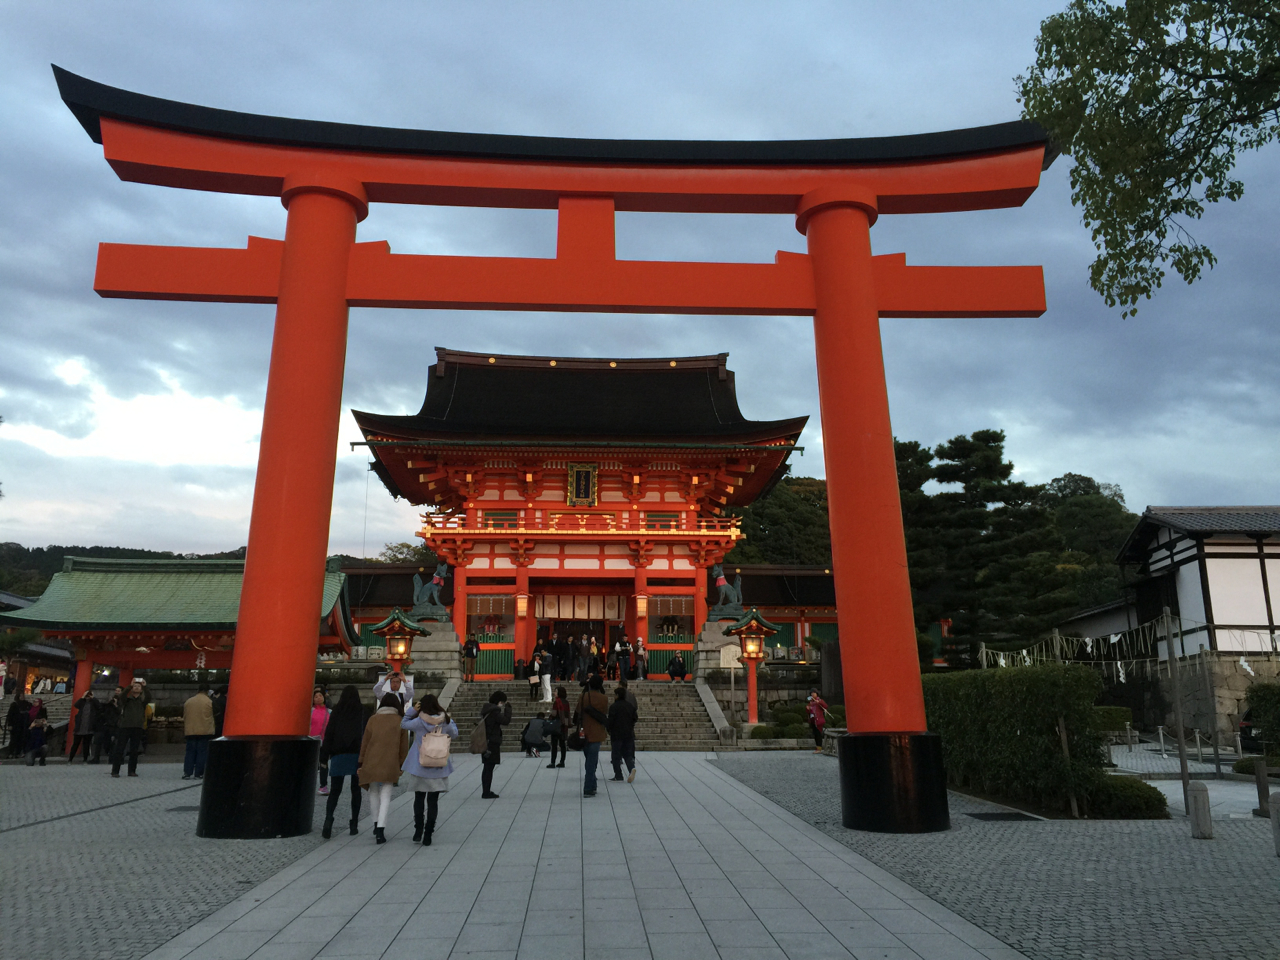 Pretty amazing Shinto shrine